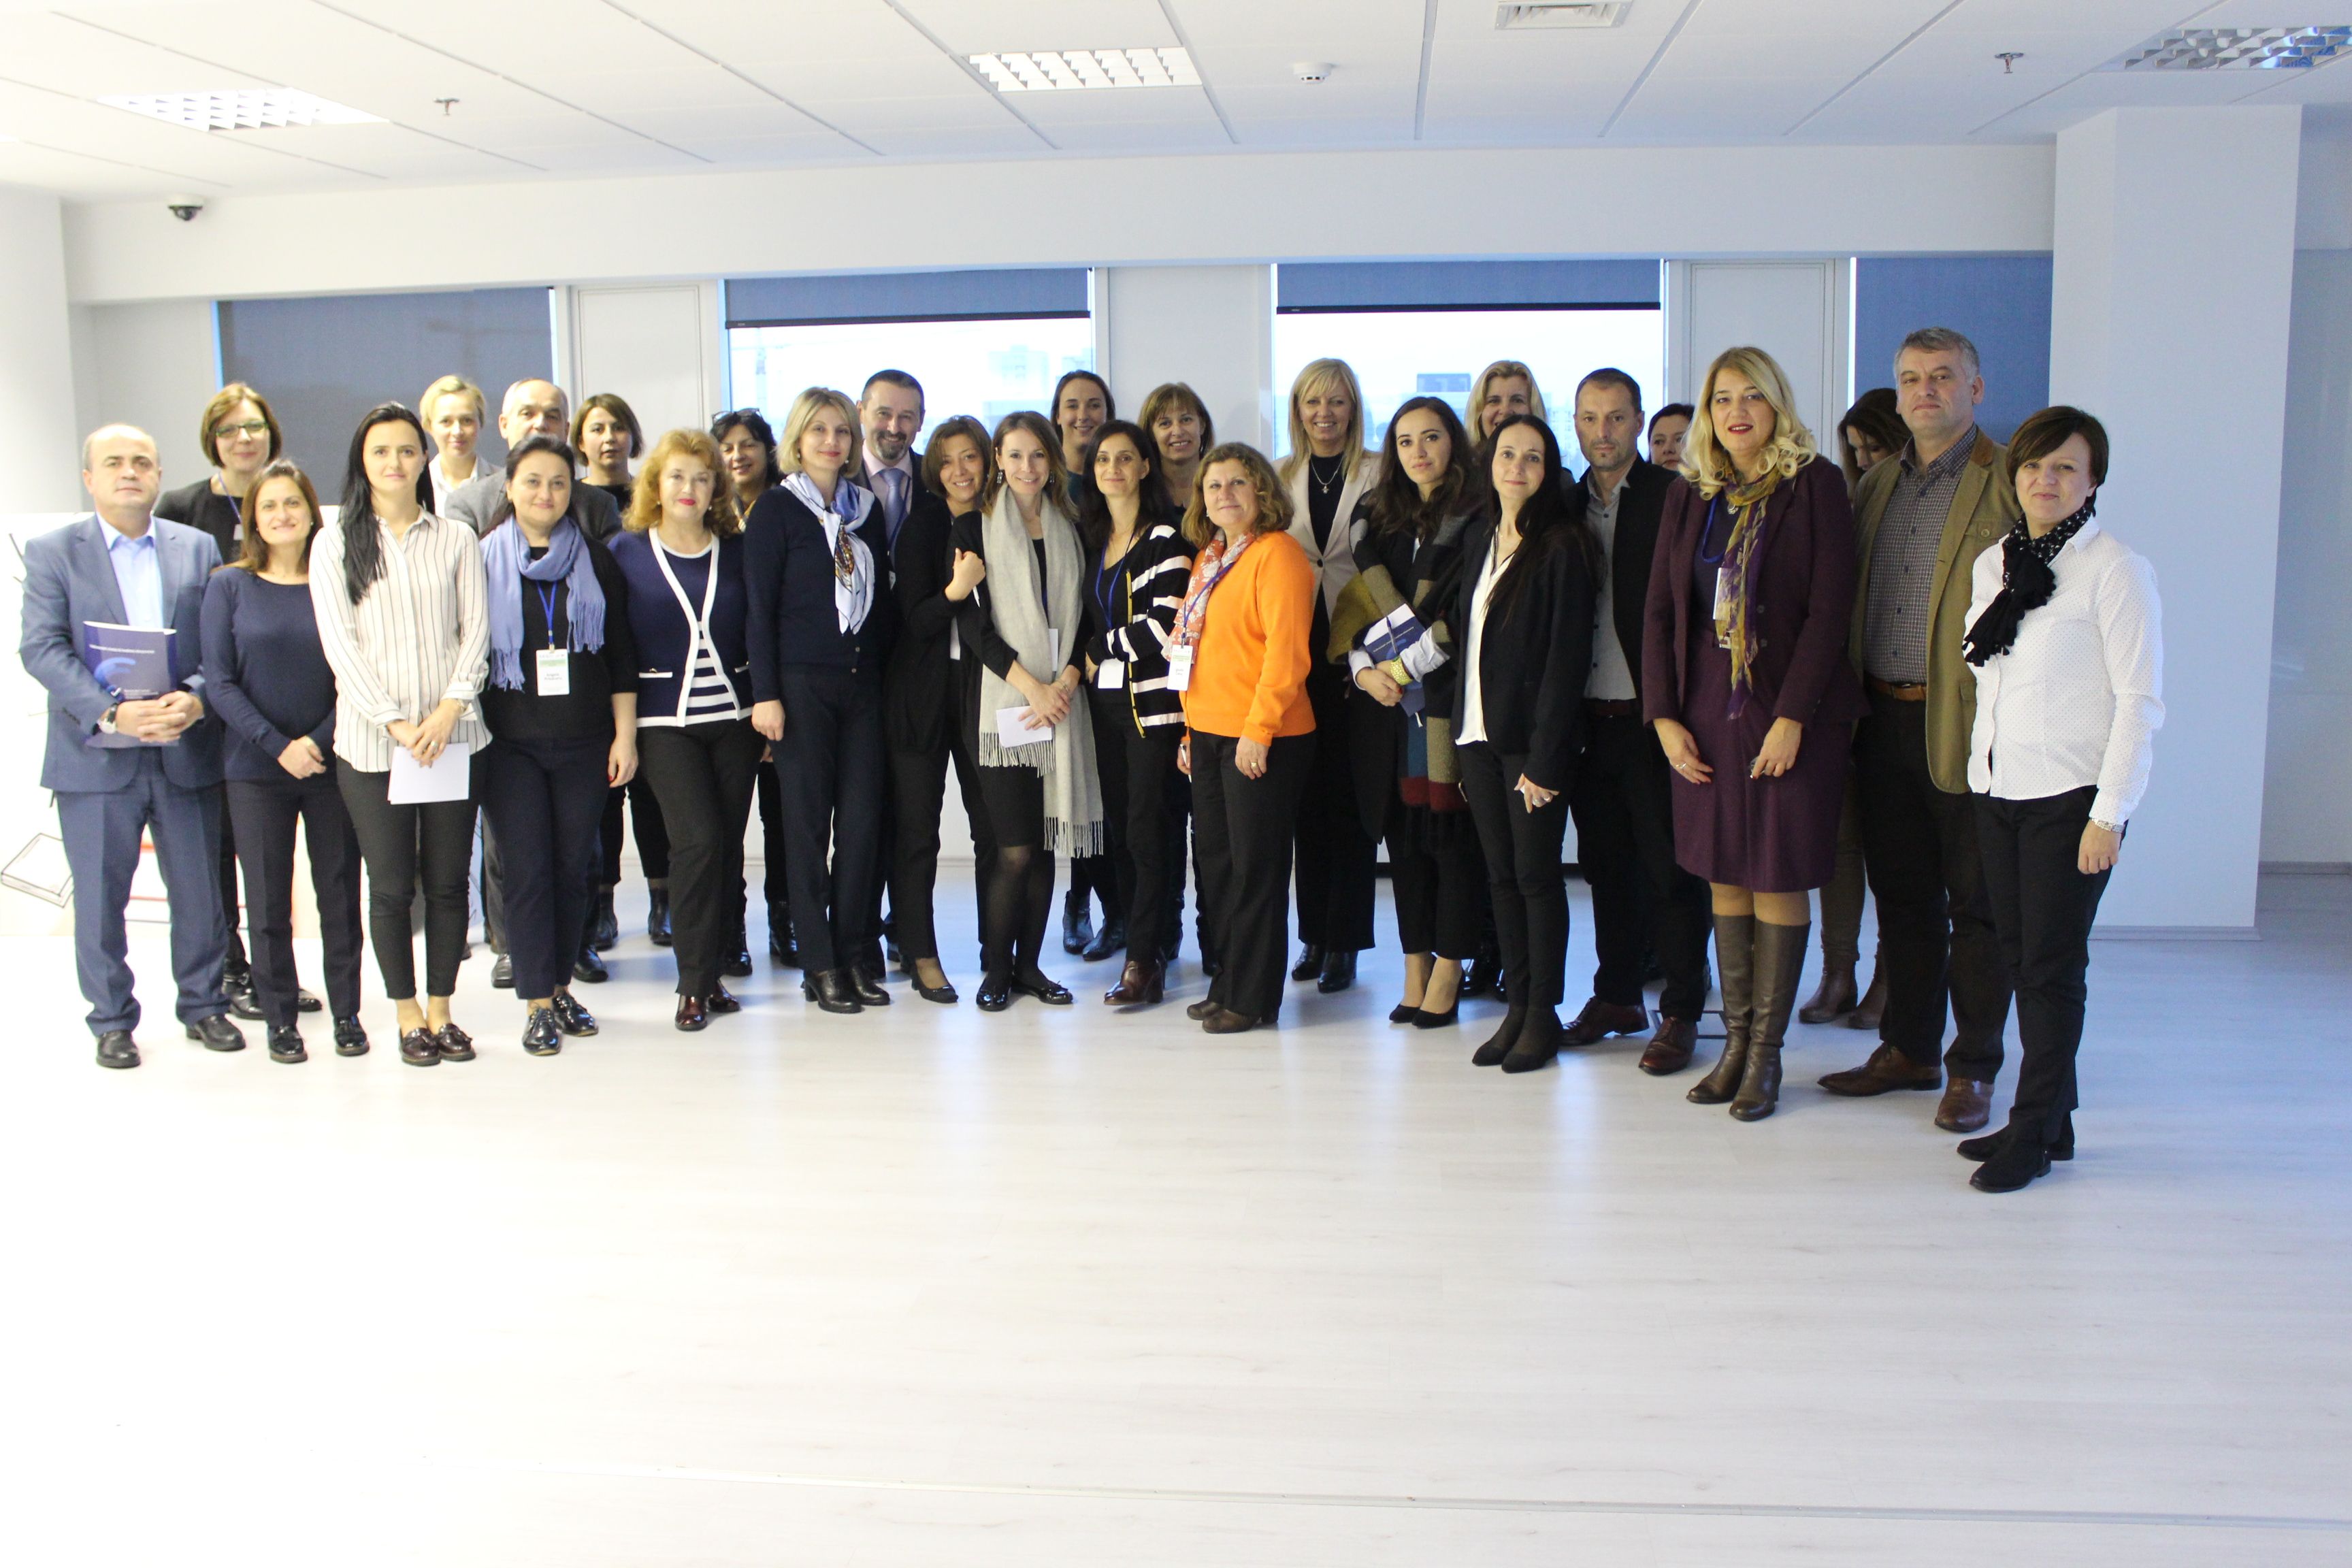 2nd Meeting Of Regional Experts In Quality Assurance In General Education, 8th November 2017, Zagreb